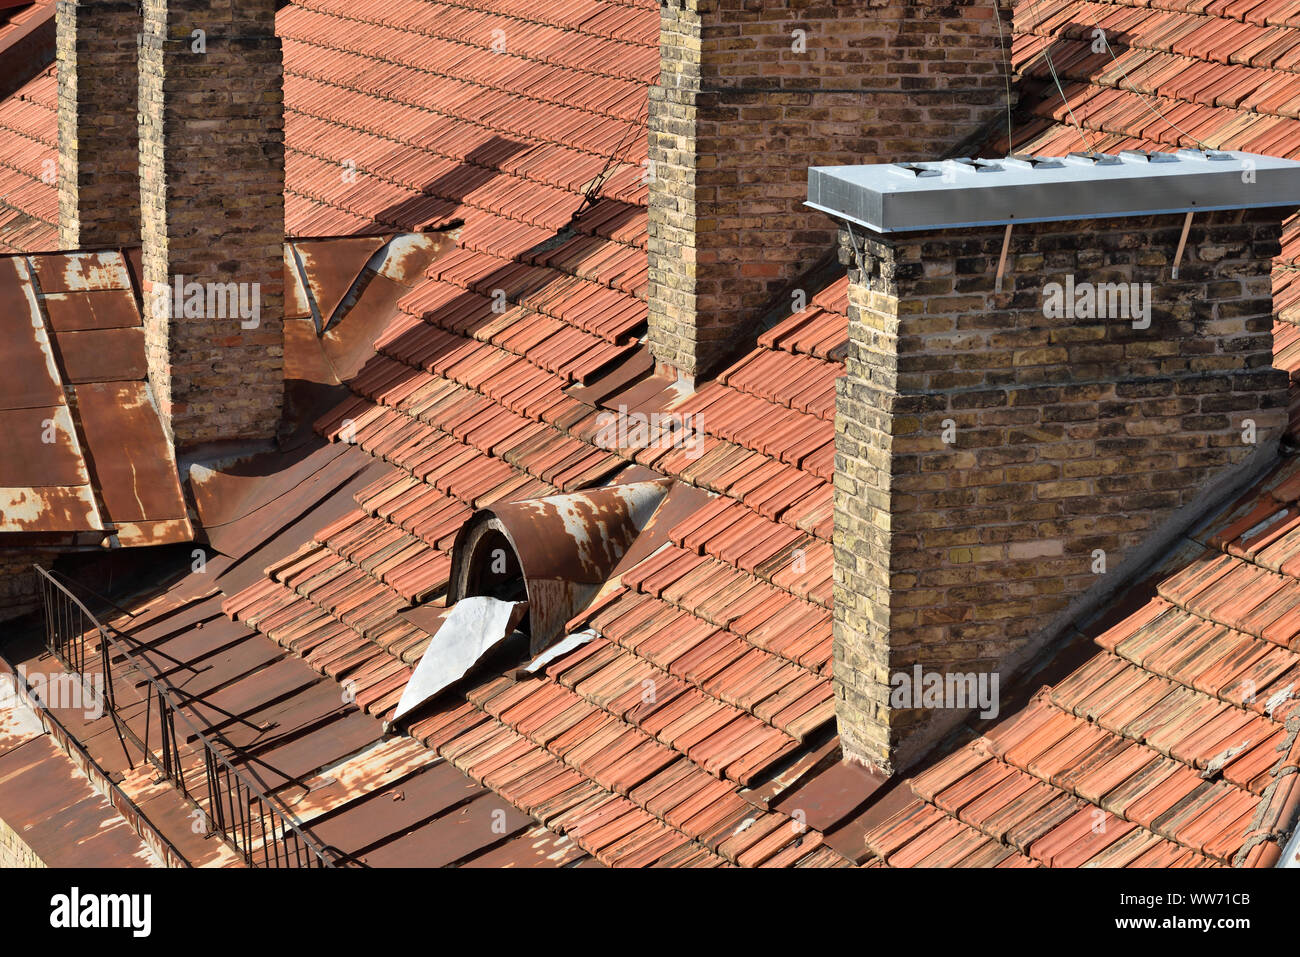 Old Clay Roof Tiles Detail Of A House Roof Made With Red Clay Tiles Stock Photo Alamy